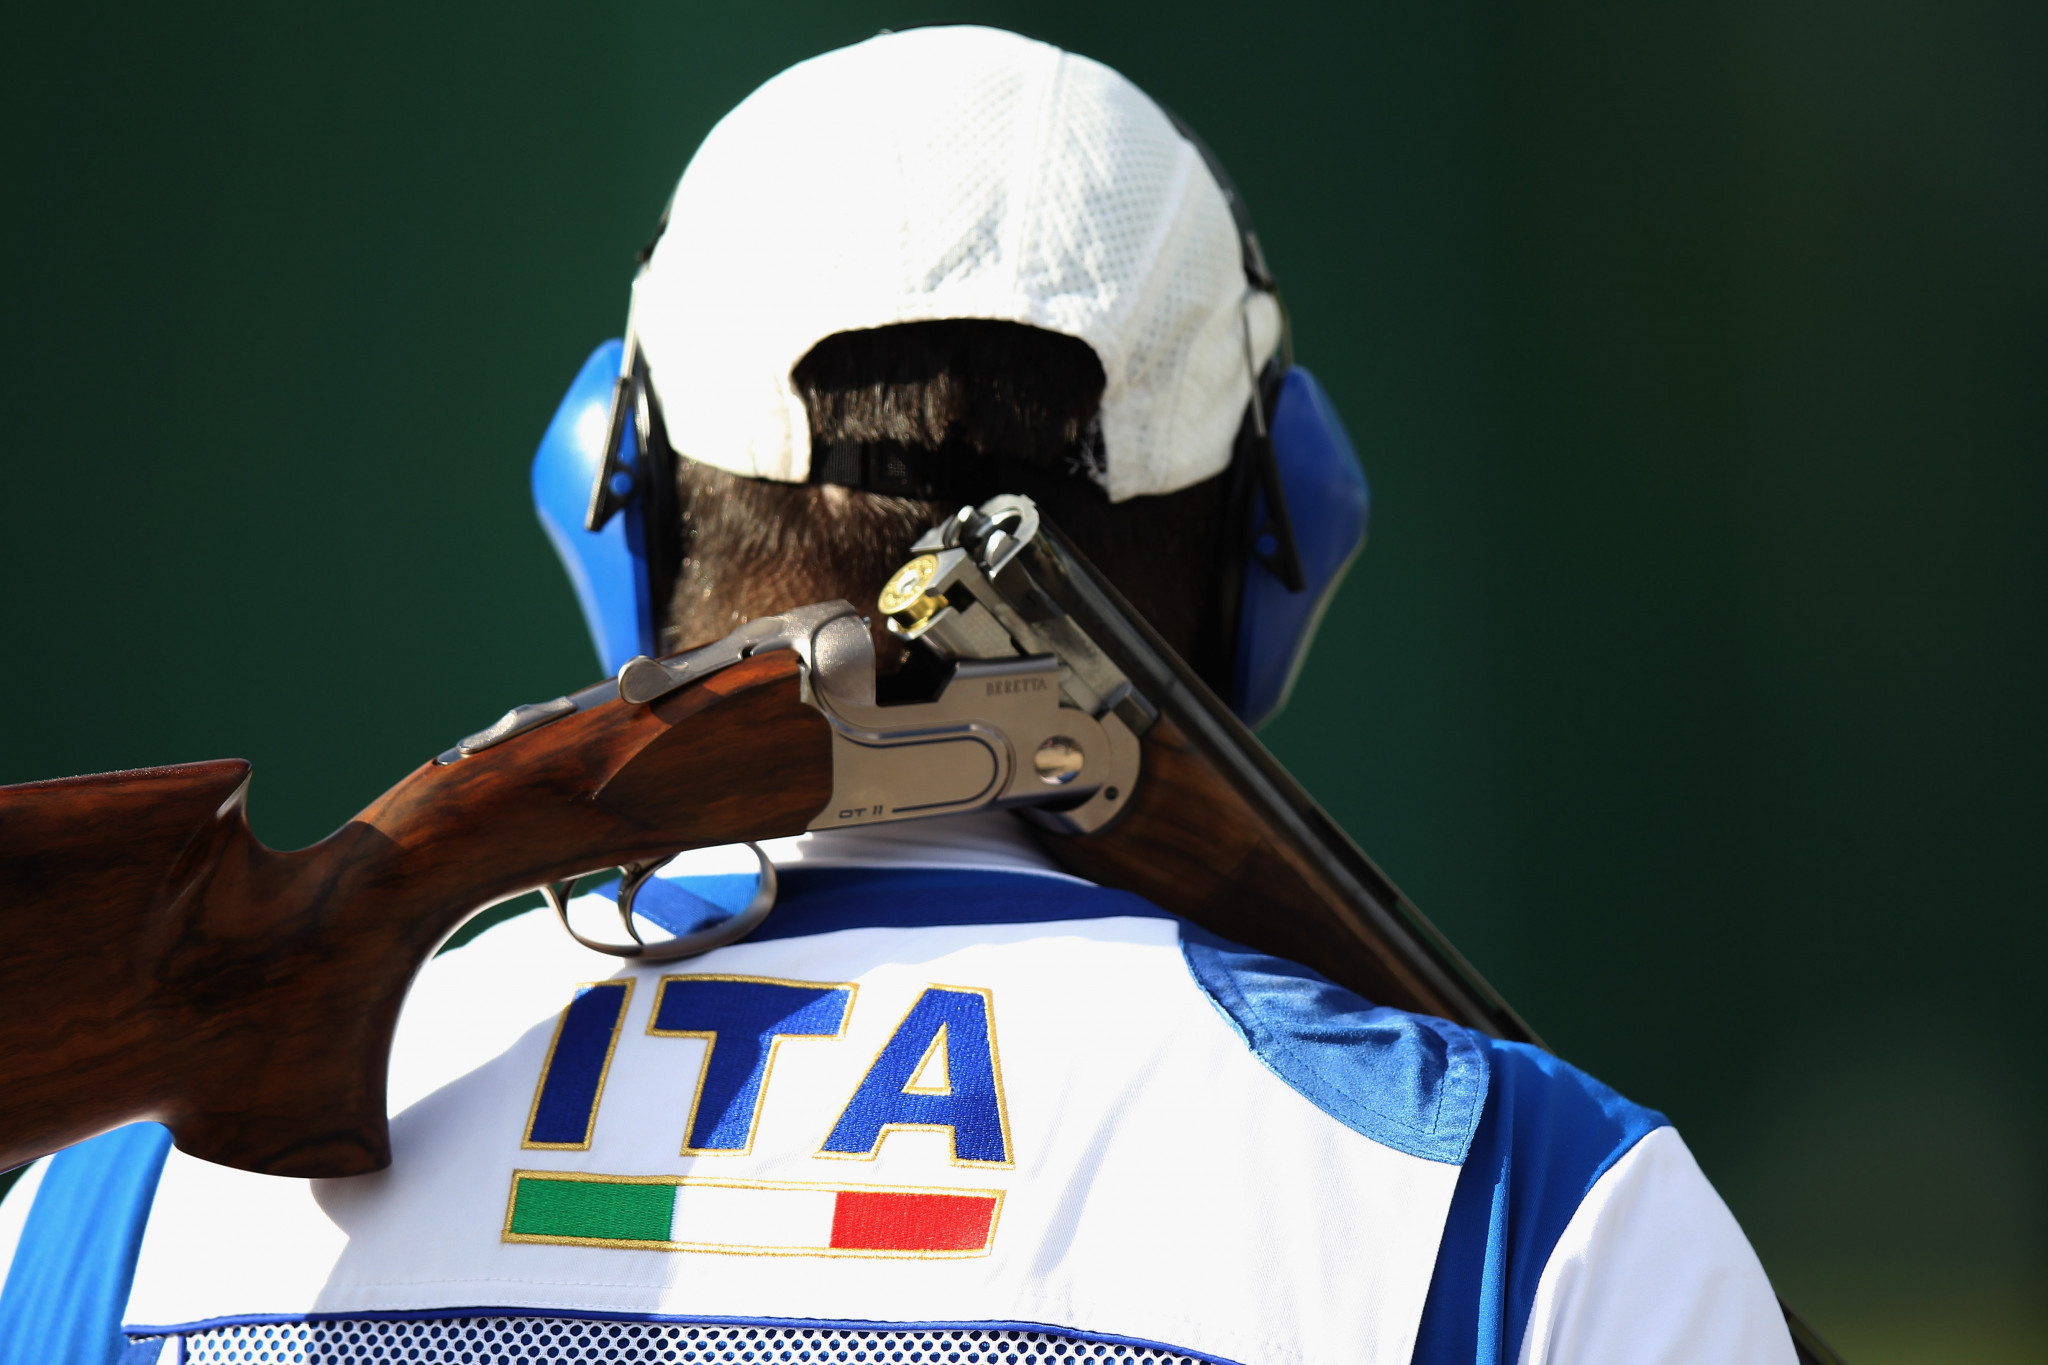 Italy expected to dominate World Shooting Para Sport Trap Championships on home soil